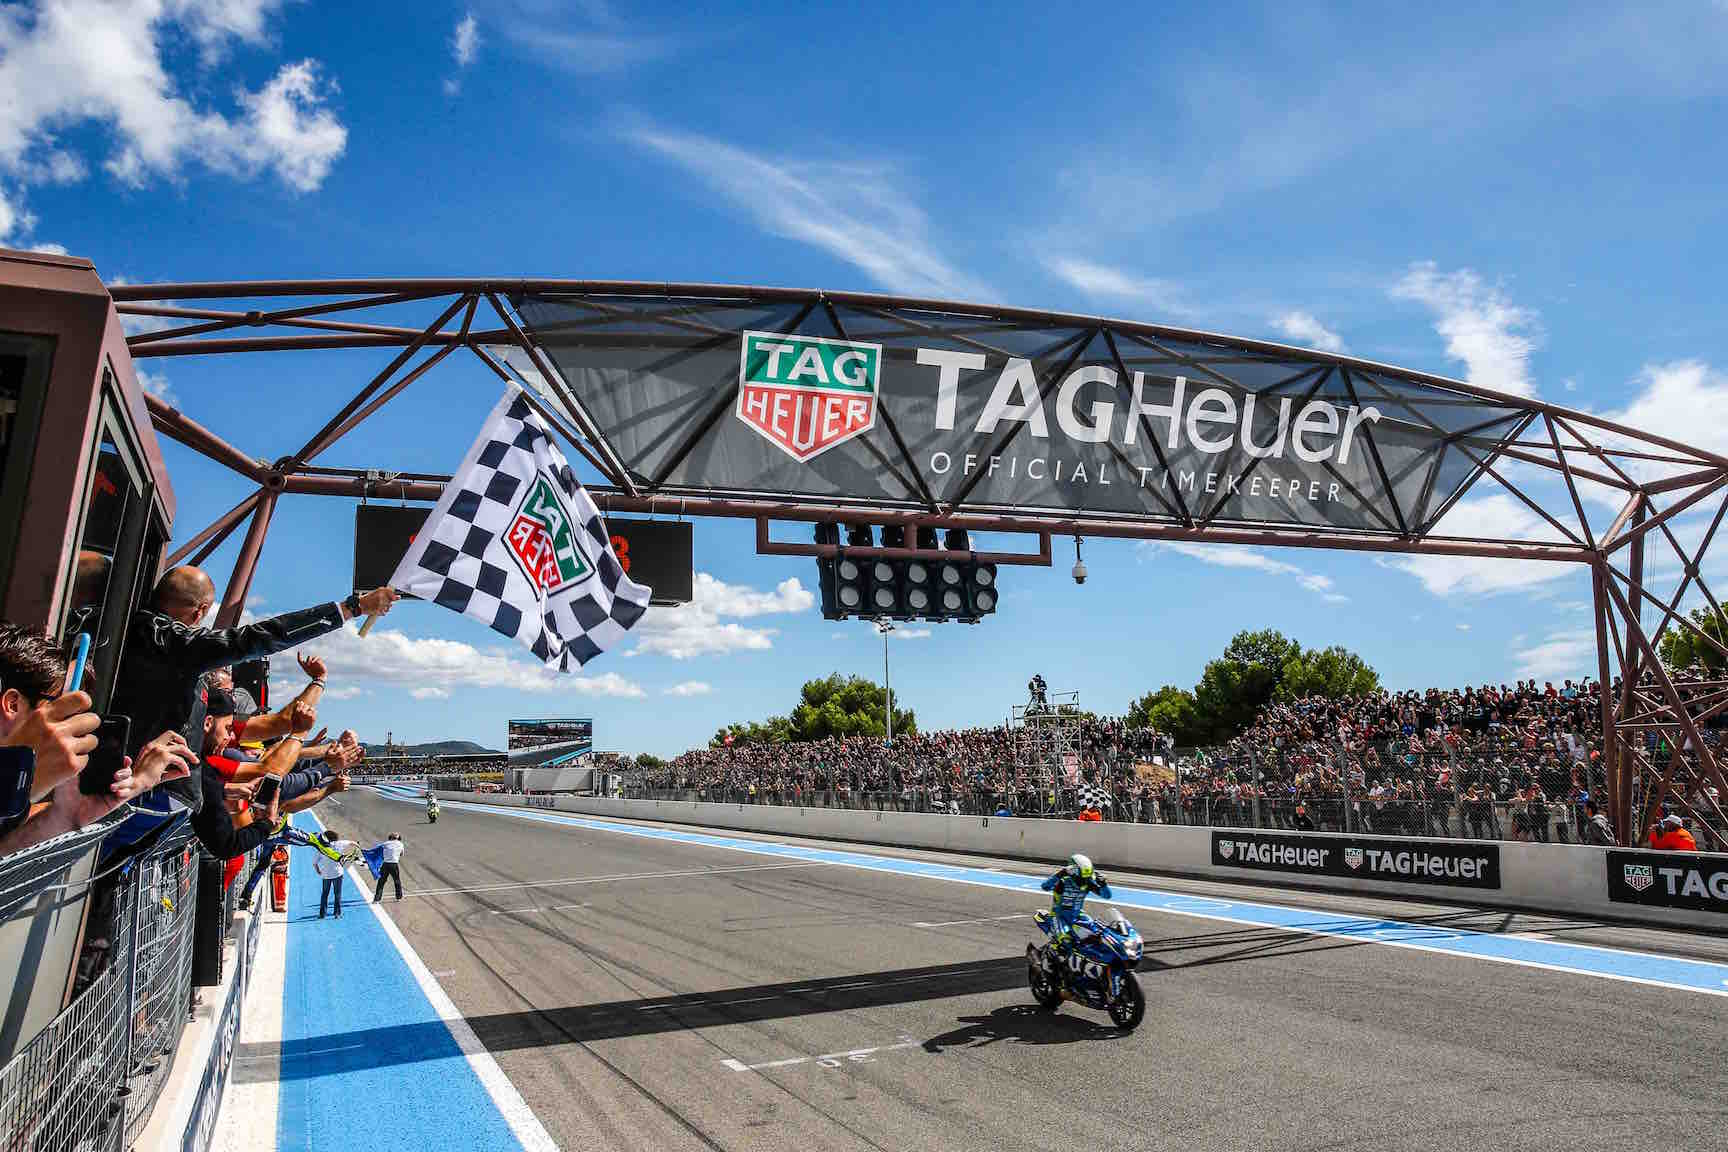 SERT calls all the shots at the Bol d'Or